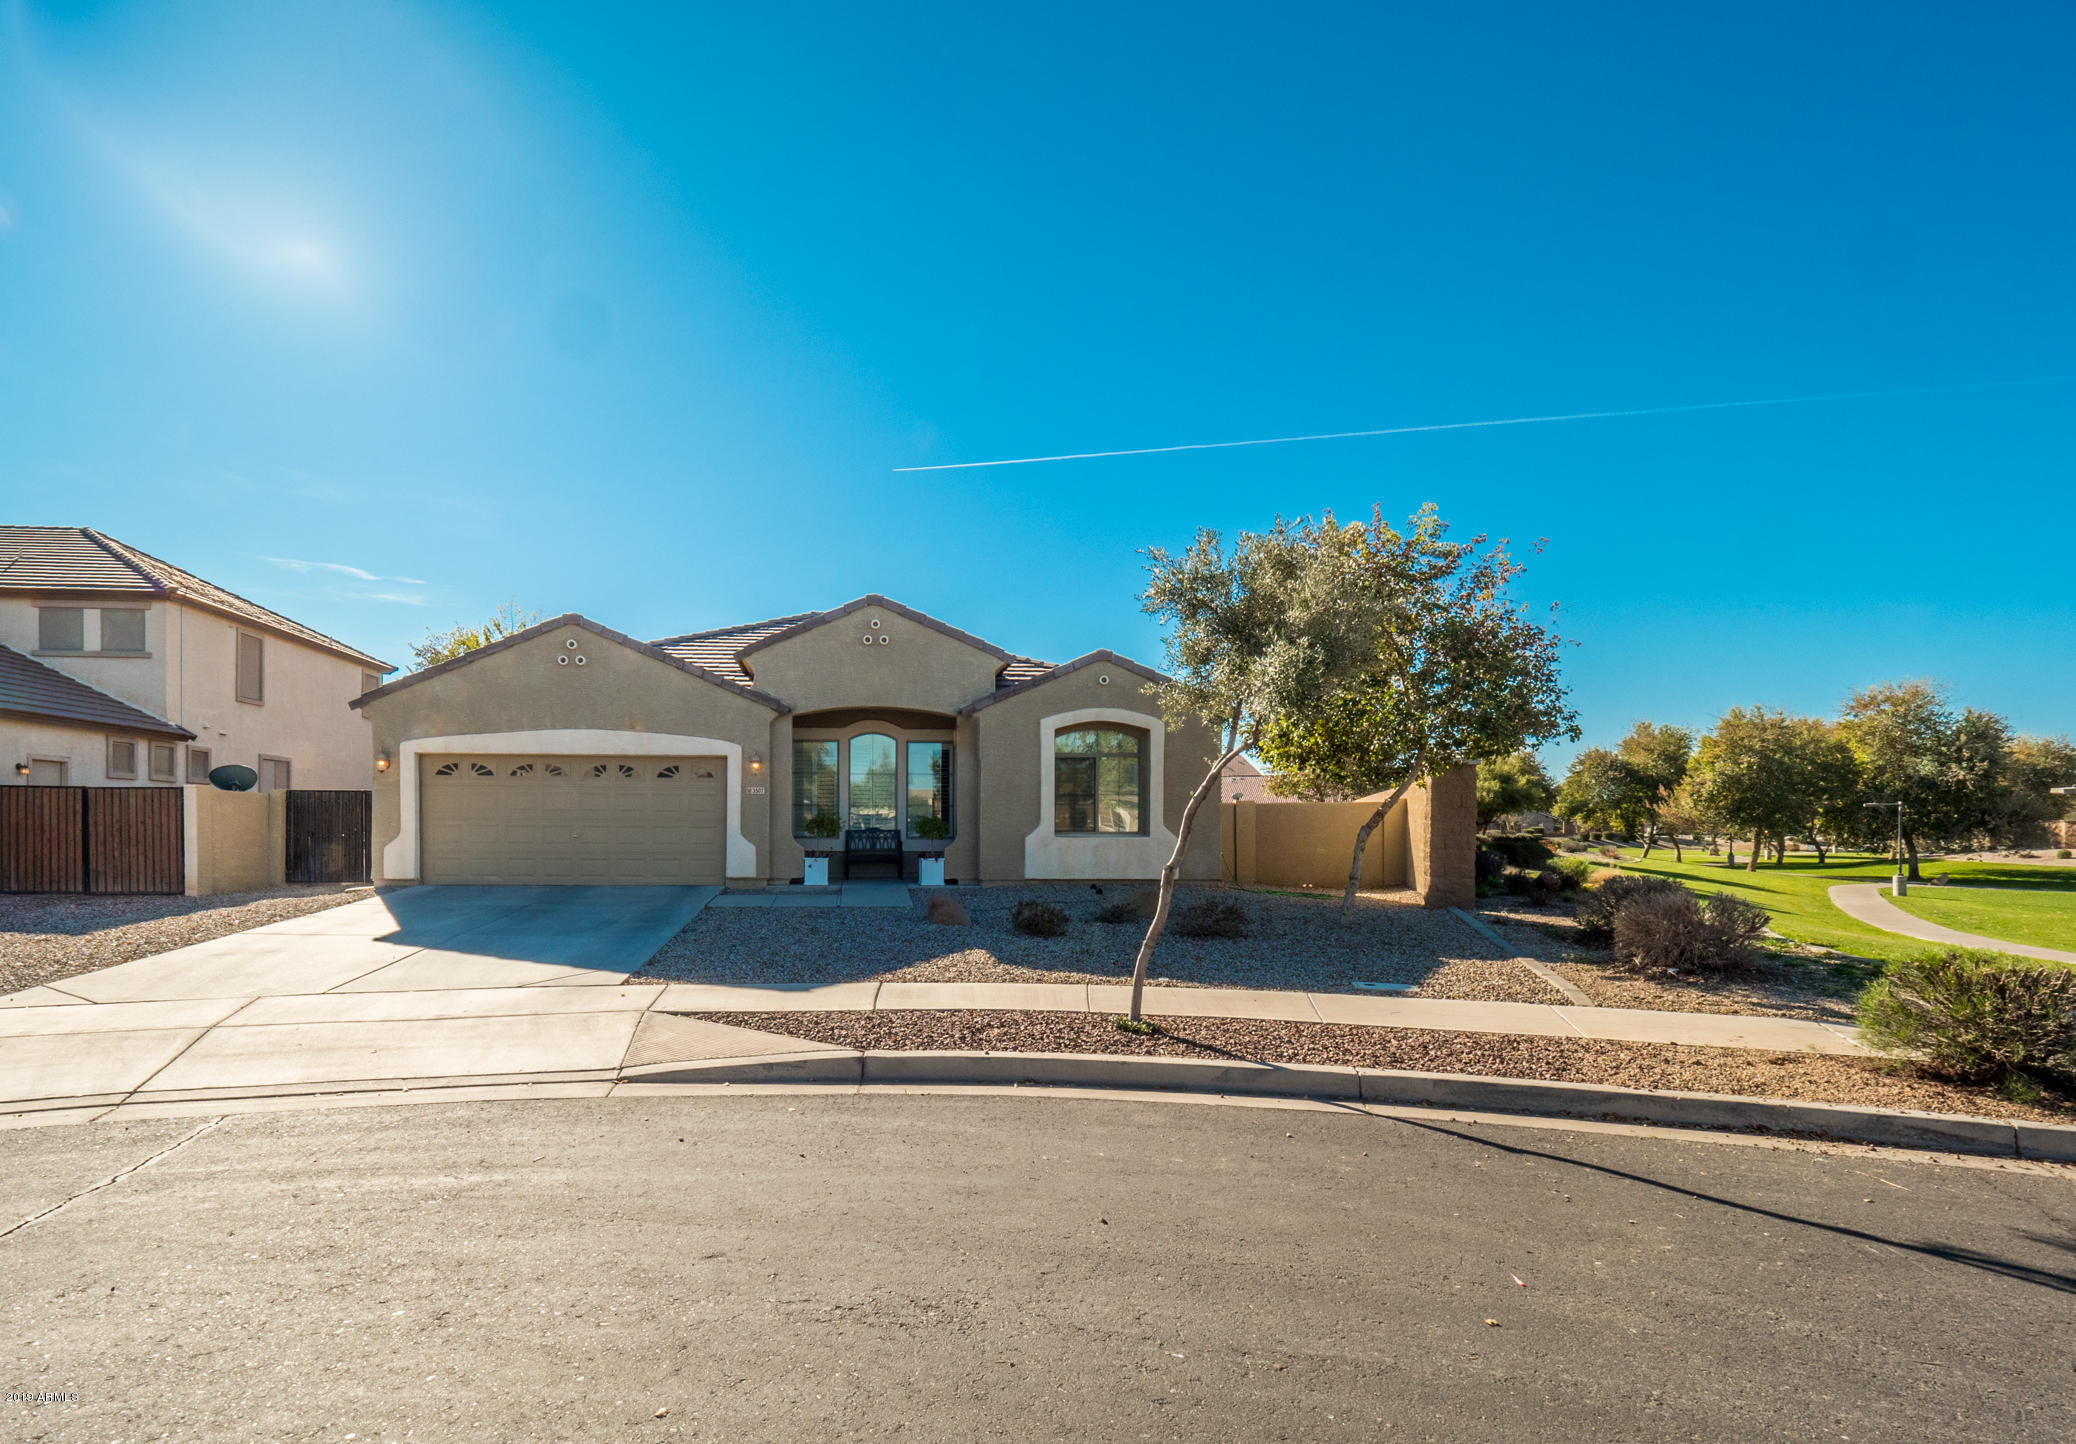 MLS 5872189 3507 E ELEANA Lane, Gilbert, AZ Gilbert AZ Marbella Vineyards